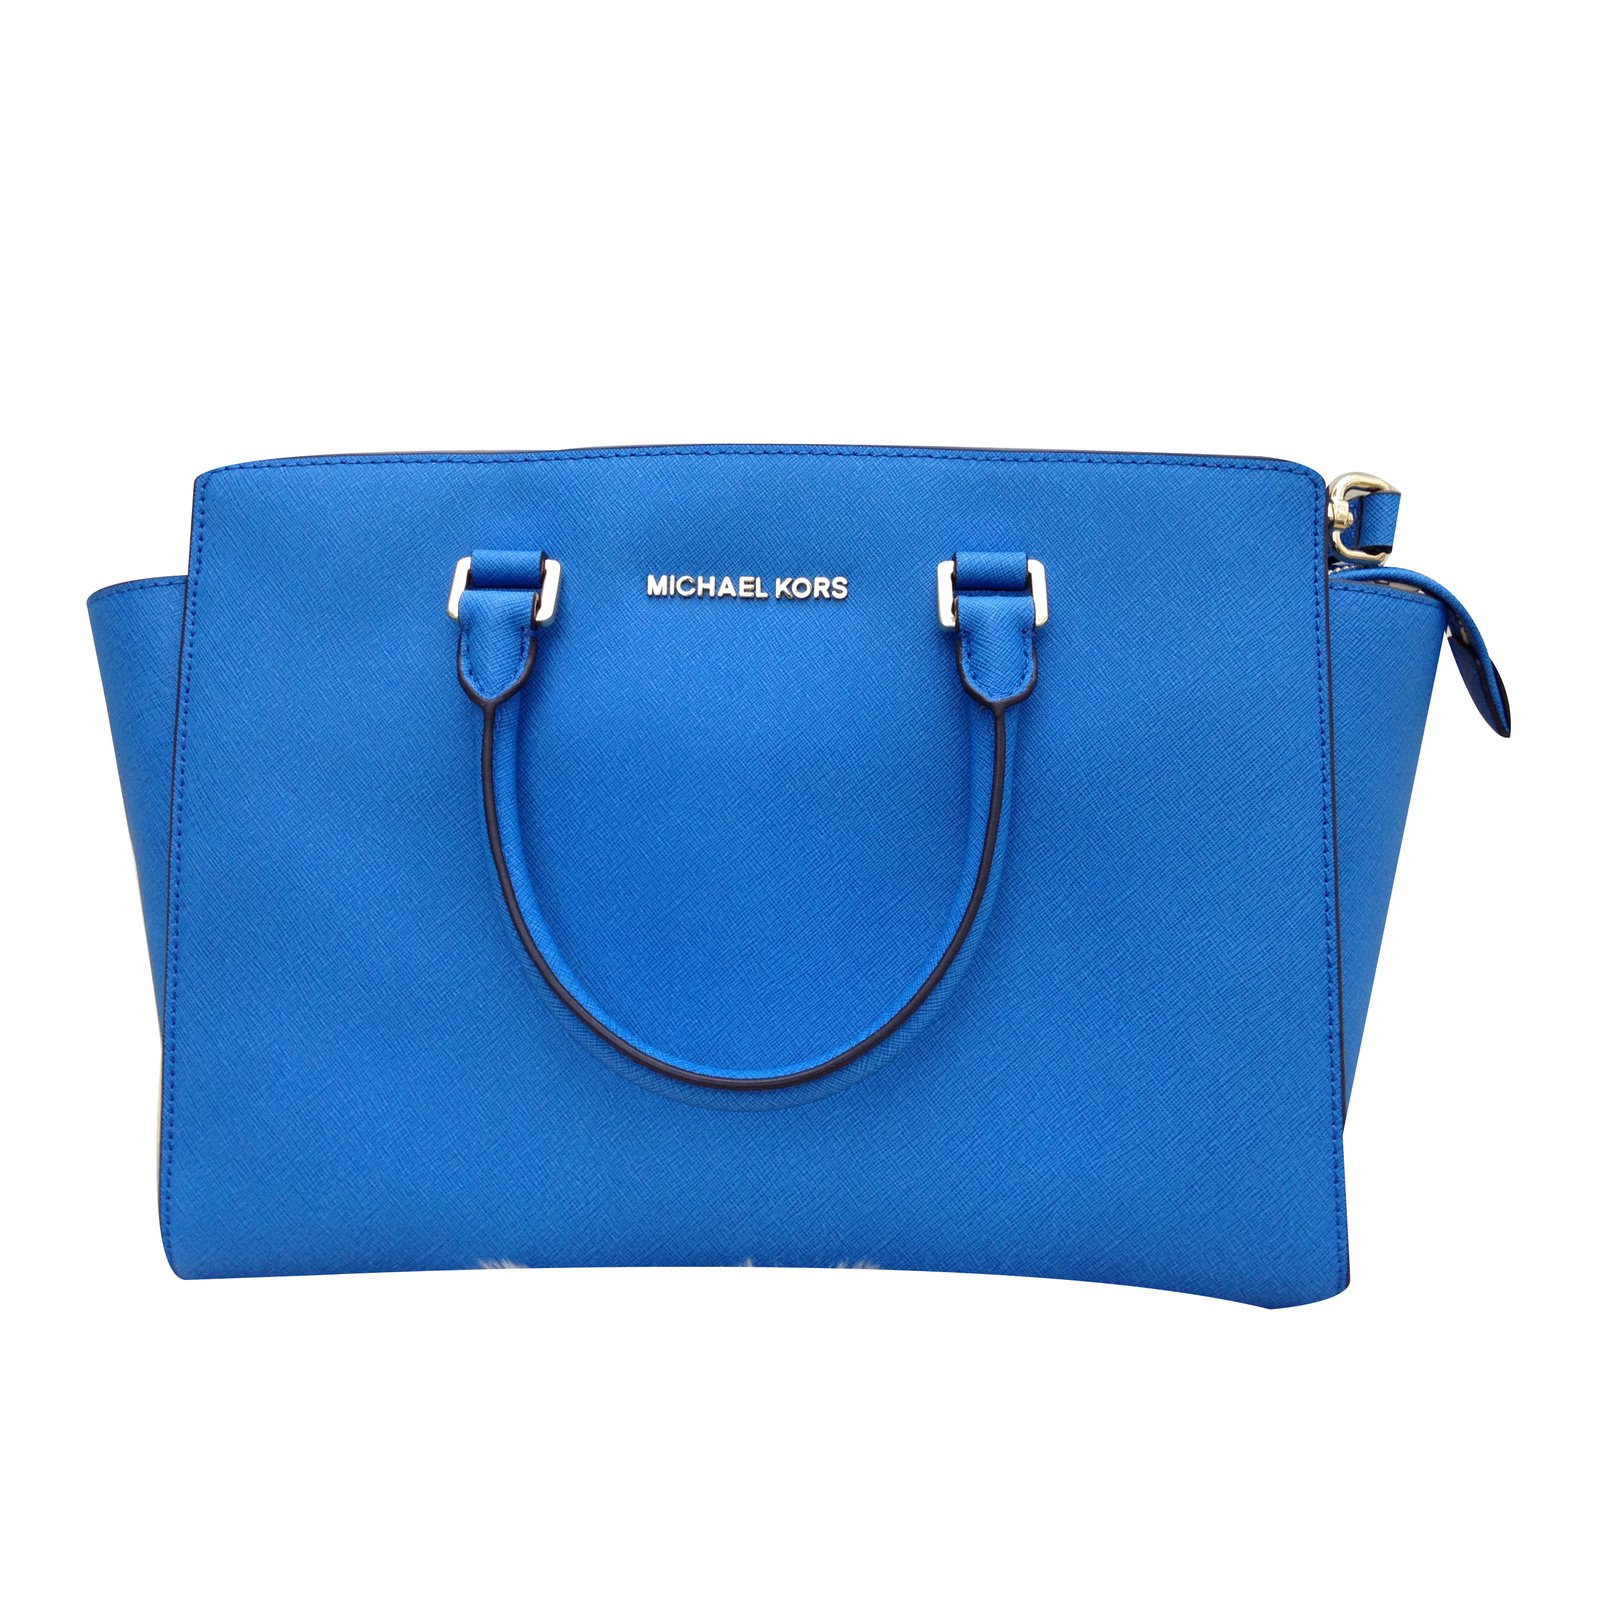 6d2c38f3541c Michael Kors Handbag Handbags Leather Blue Ref 33440 Joli Closet